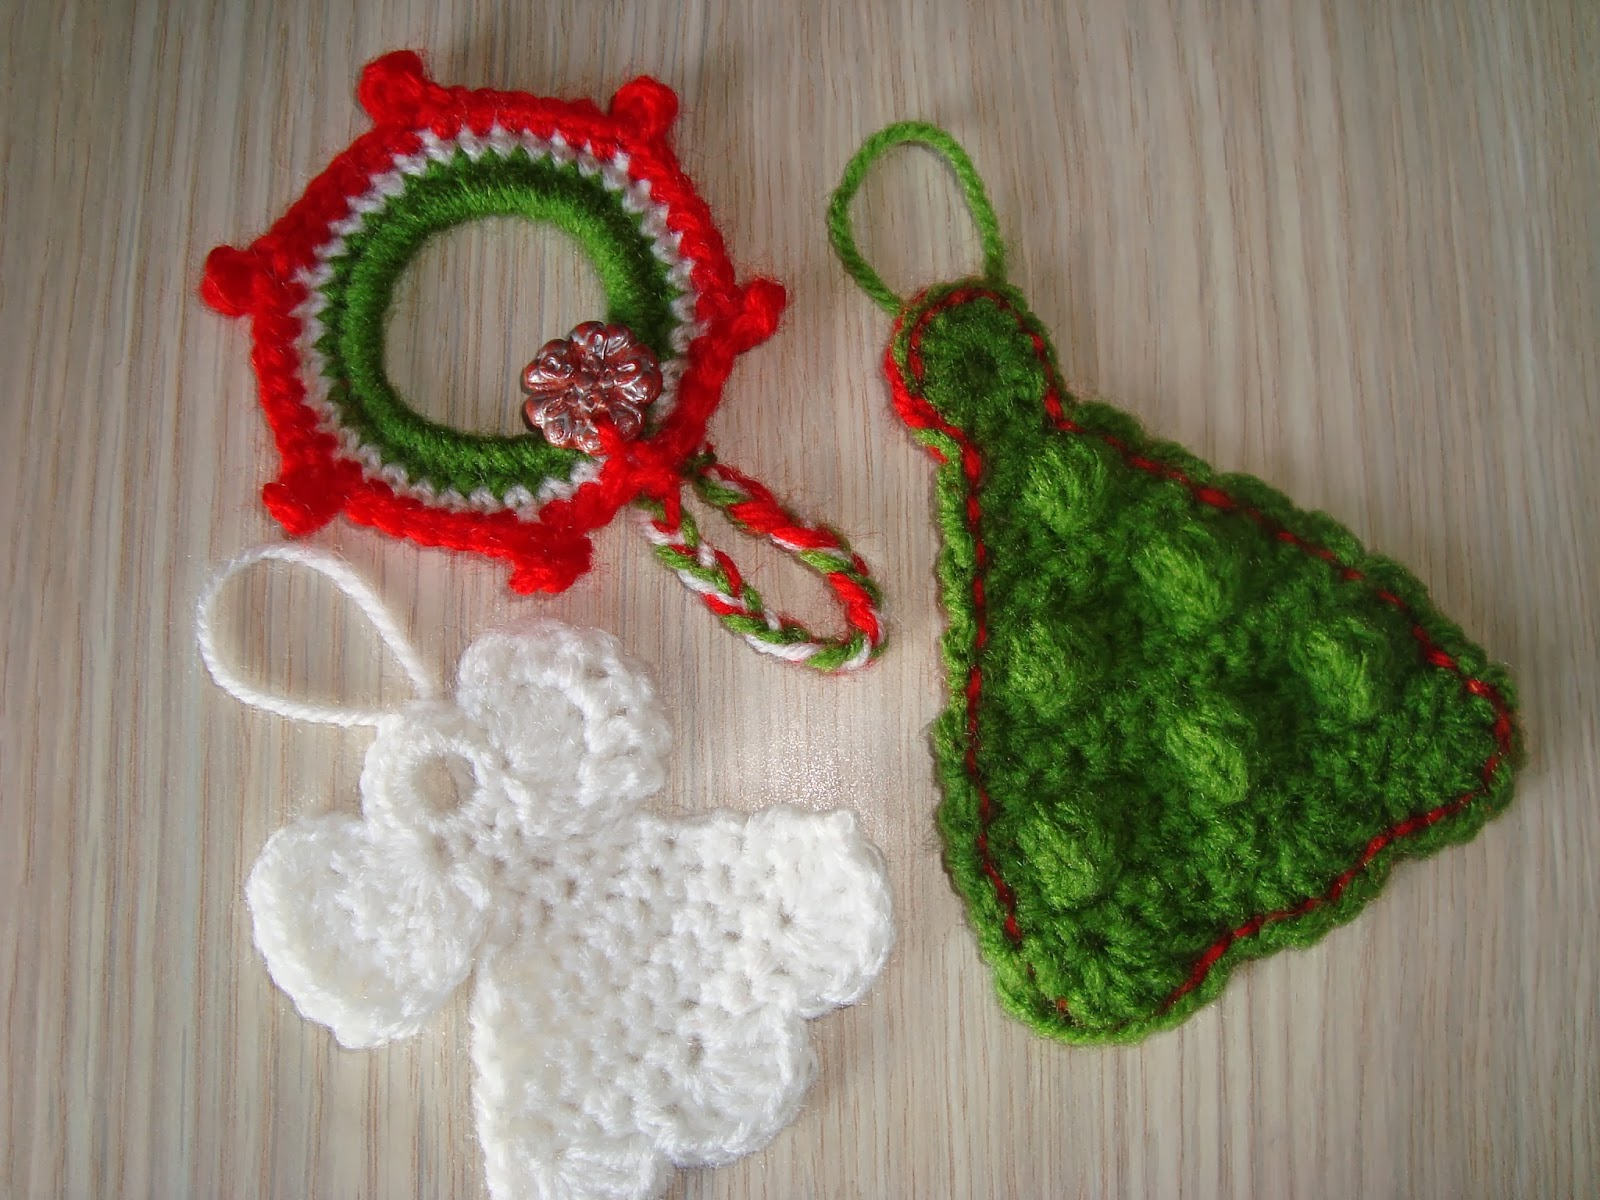 Crochet Ornaments : Crocheted ornament for Christmas